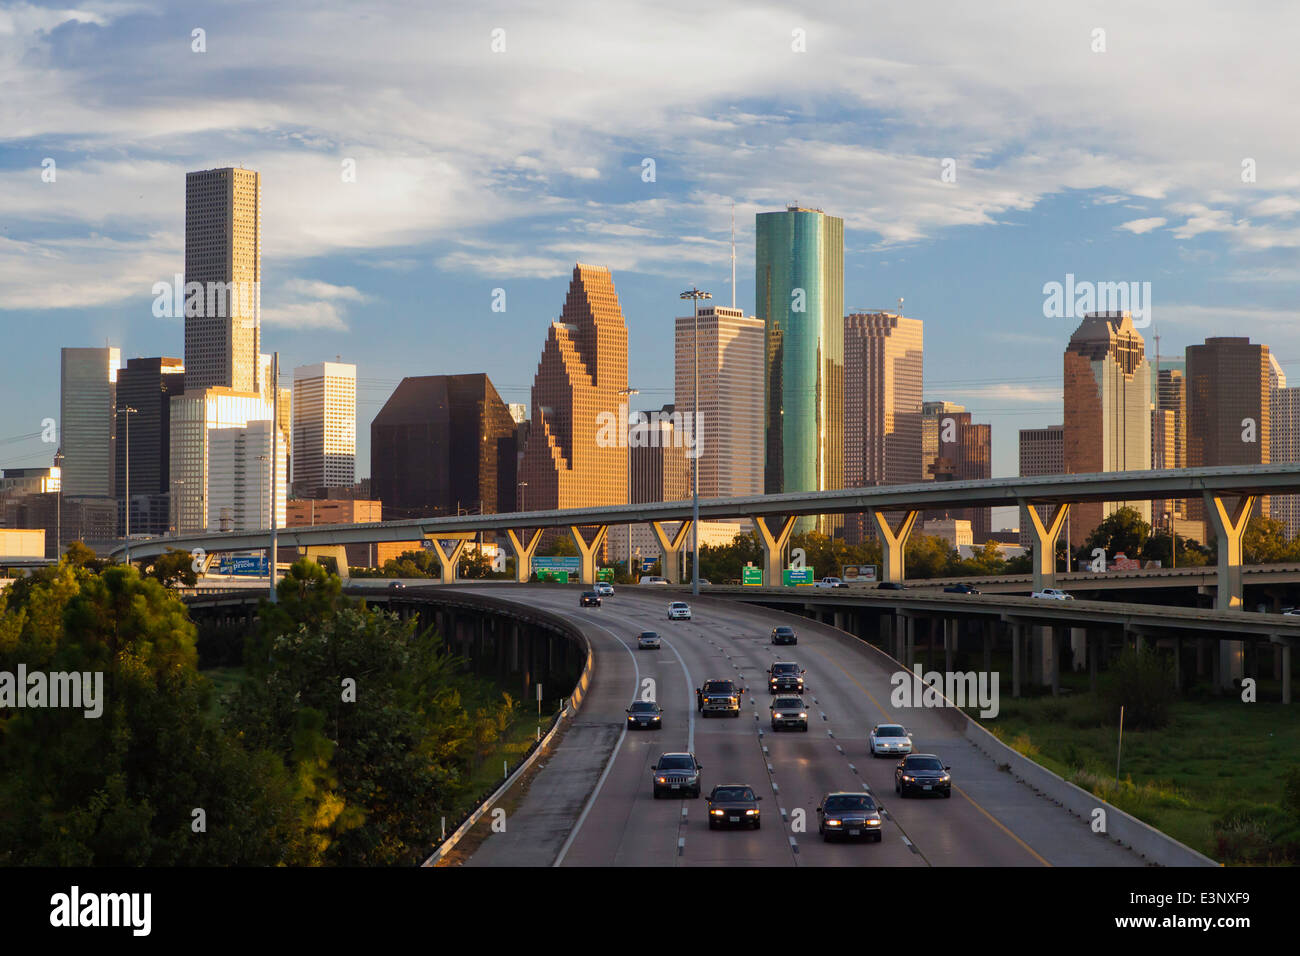 City Skyline And Interstate Houston Texas United States Of America Stock Photo Royalty Free